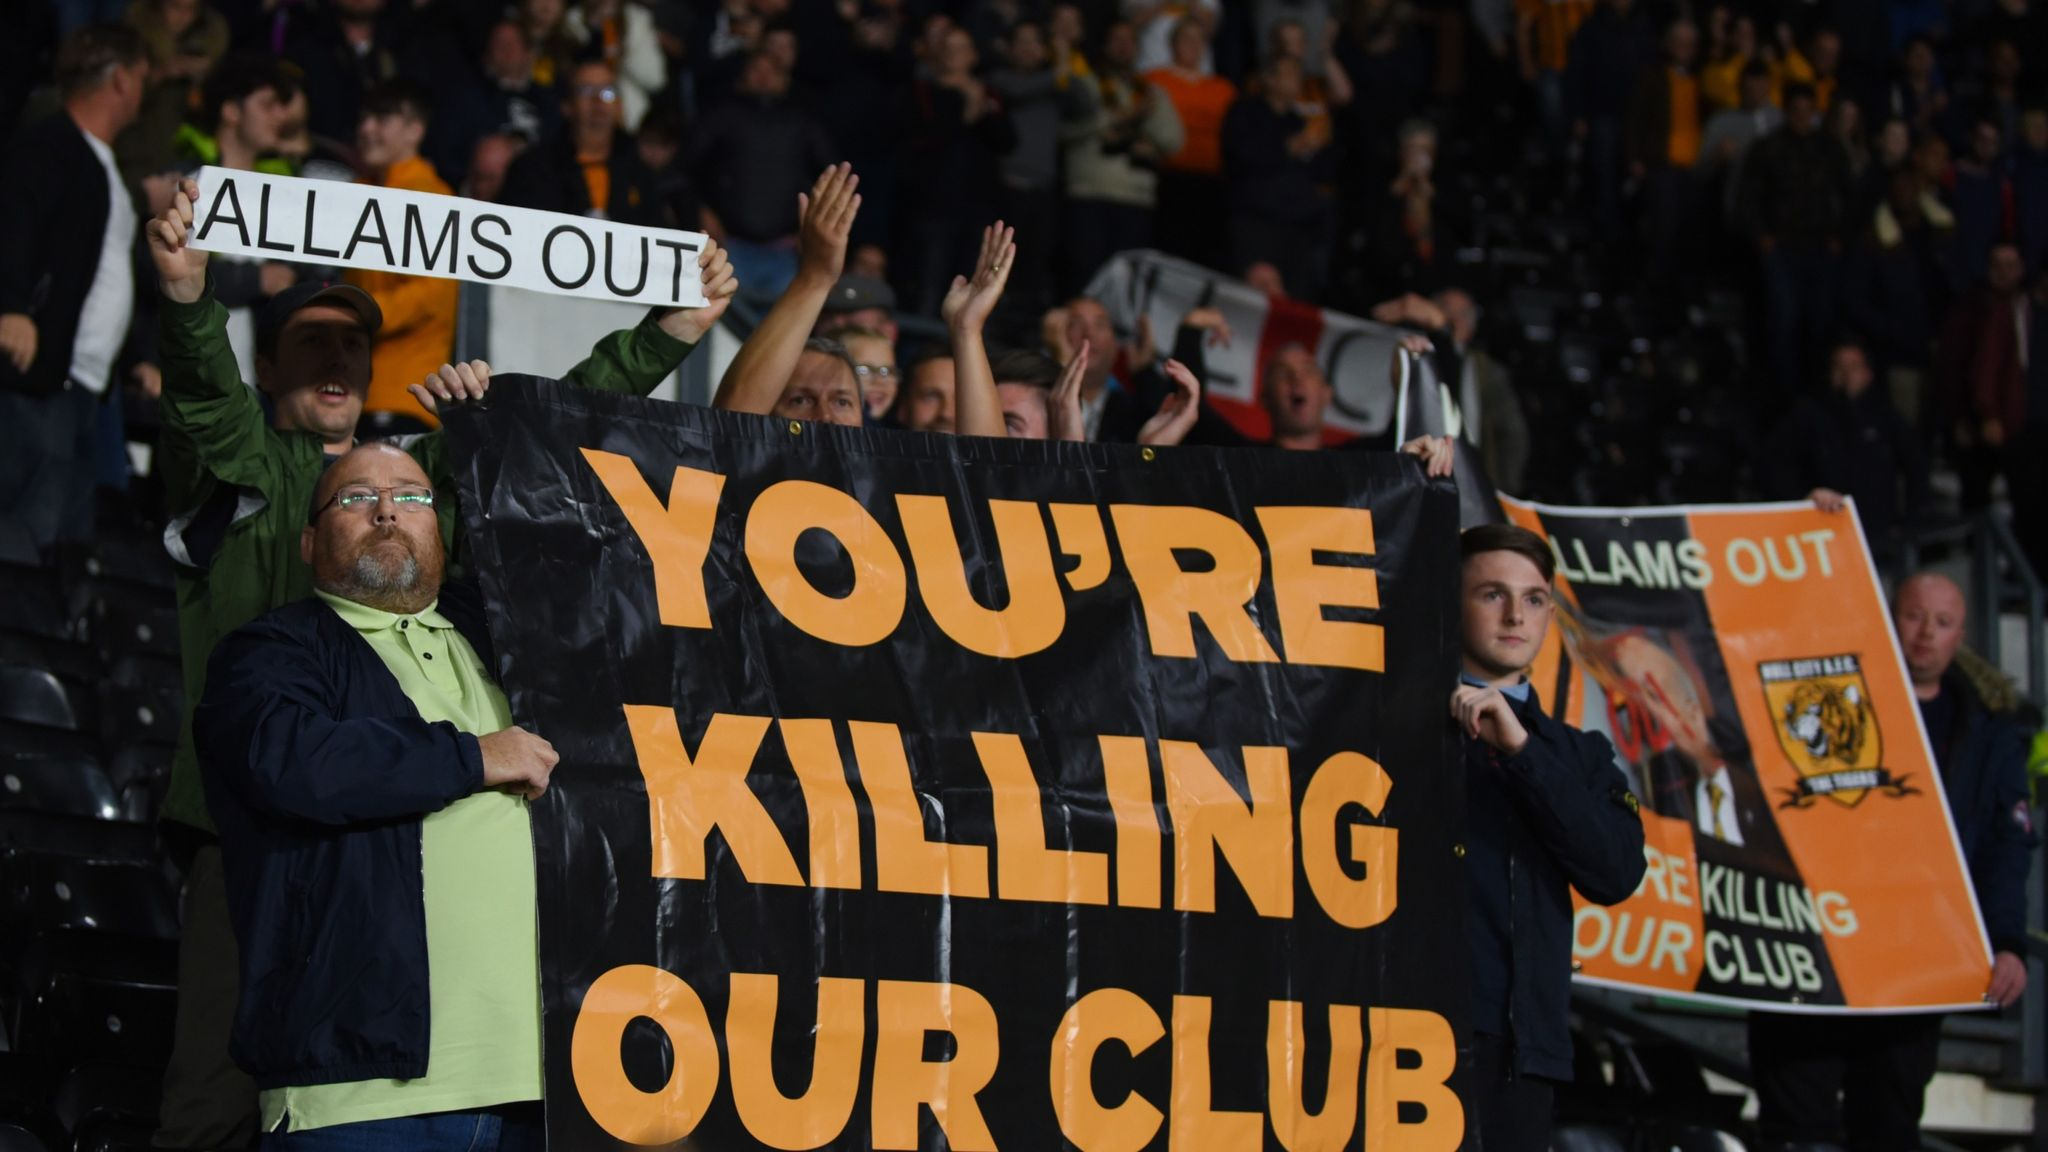 Hull City's owners plead for amnesty during matches | Football ...